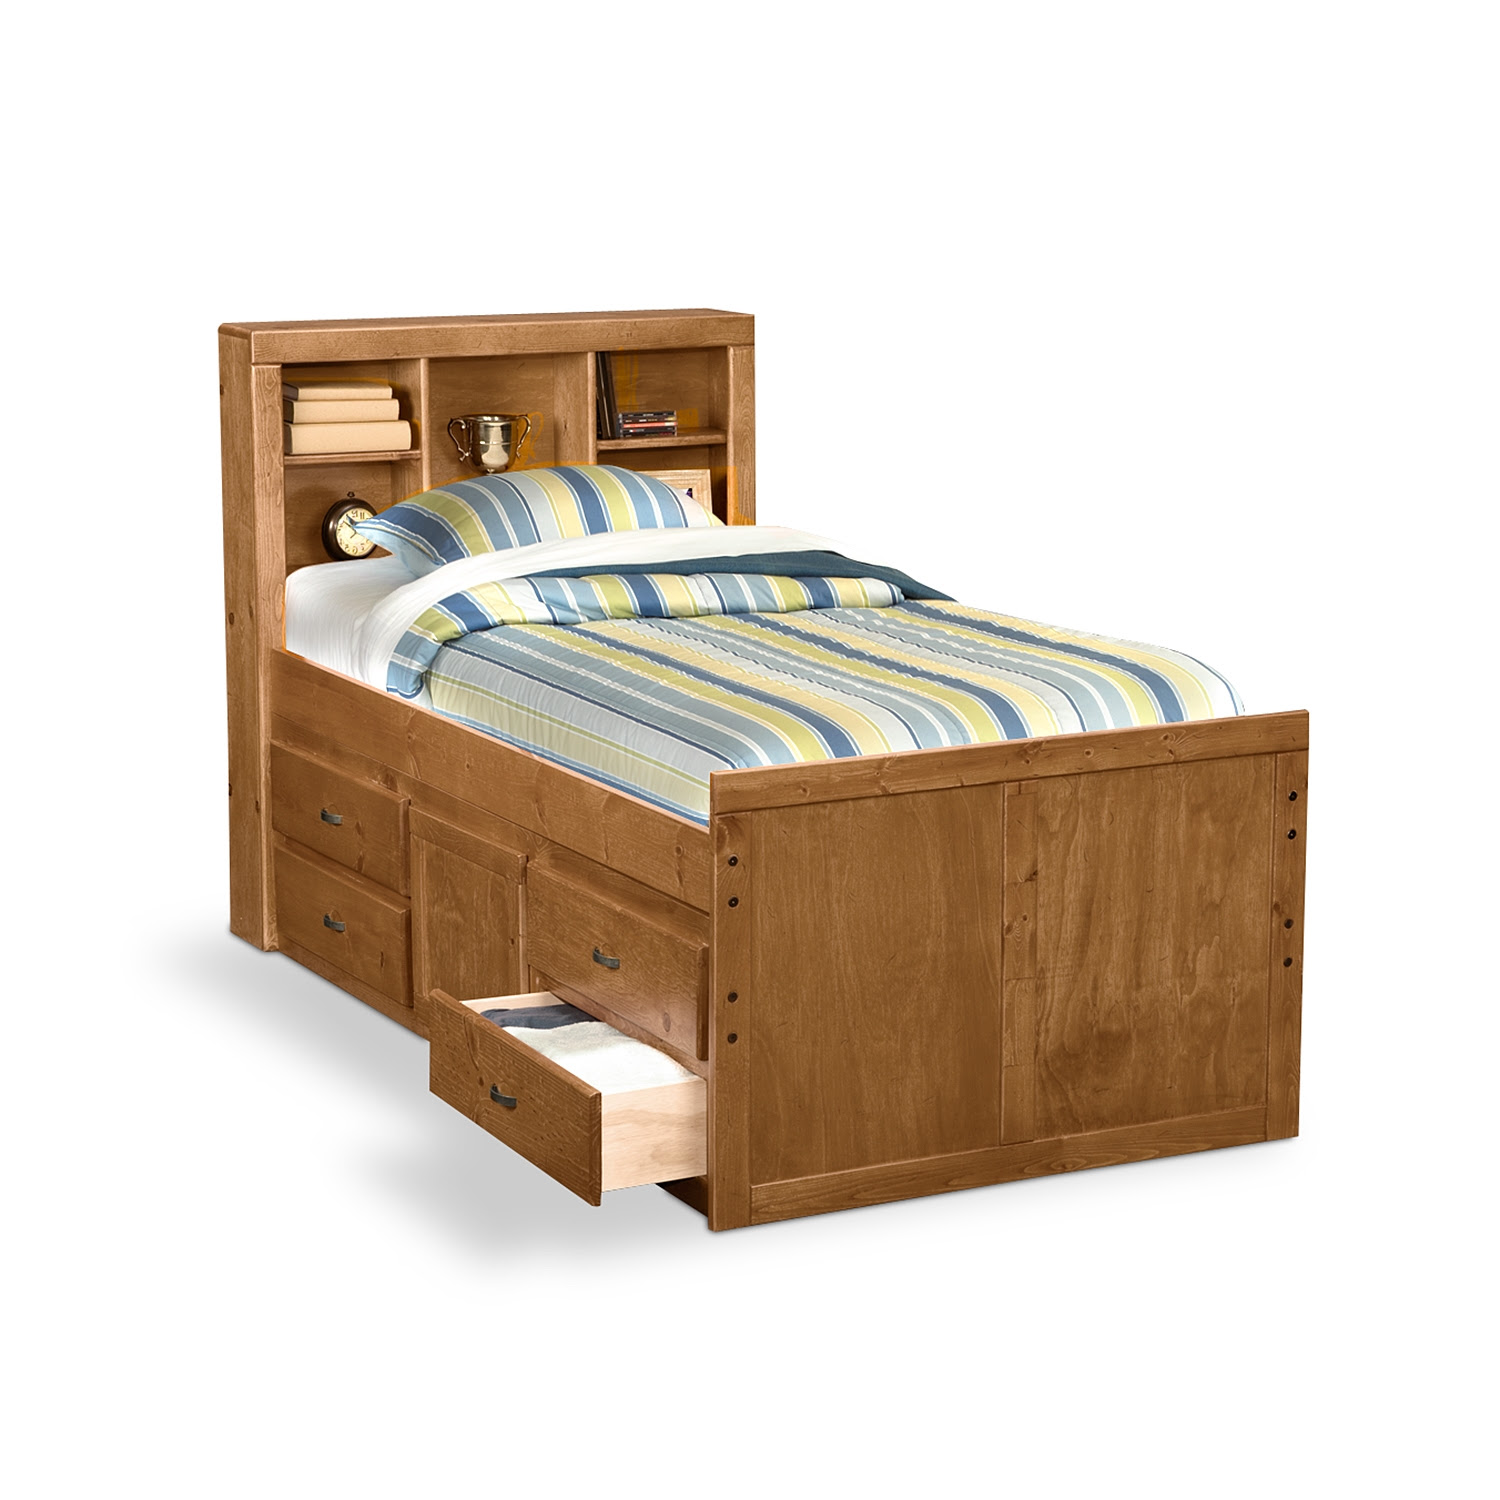 Twin Size Platform Bed With Drawers Plans Wood Working Projects